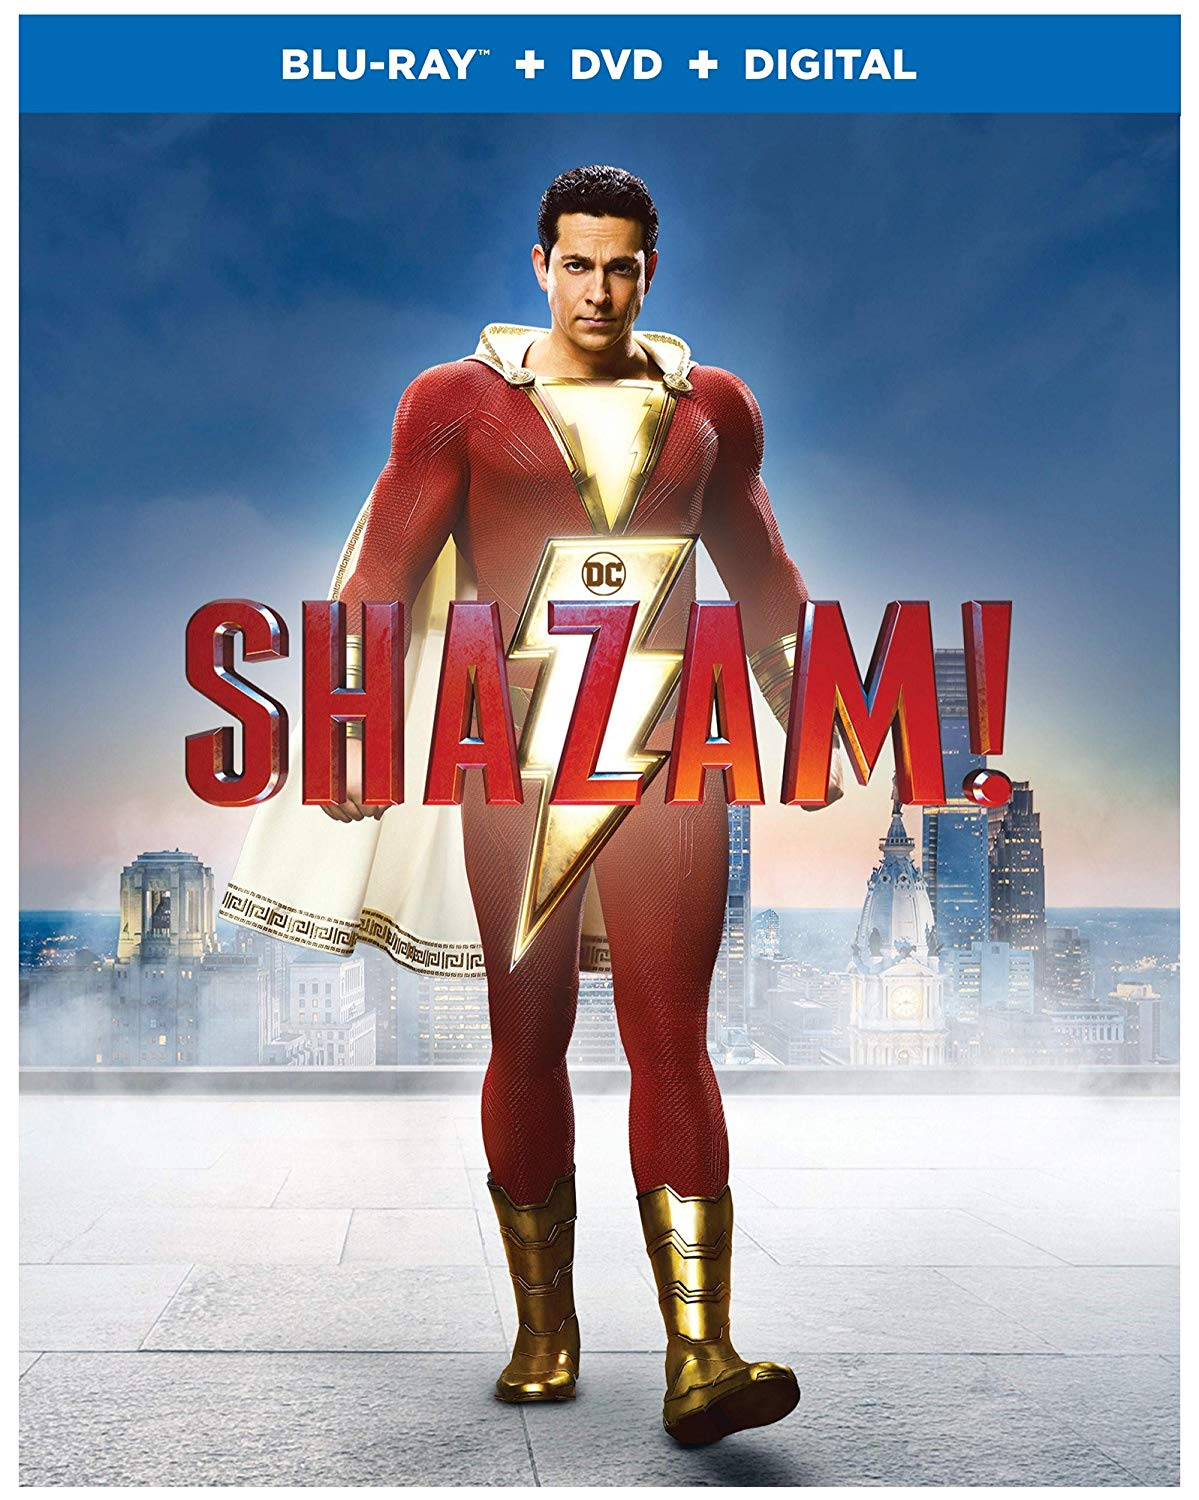 Shazam!, now available on Blu-ray and DVD